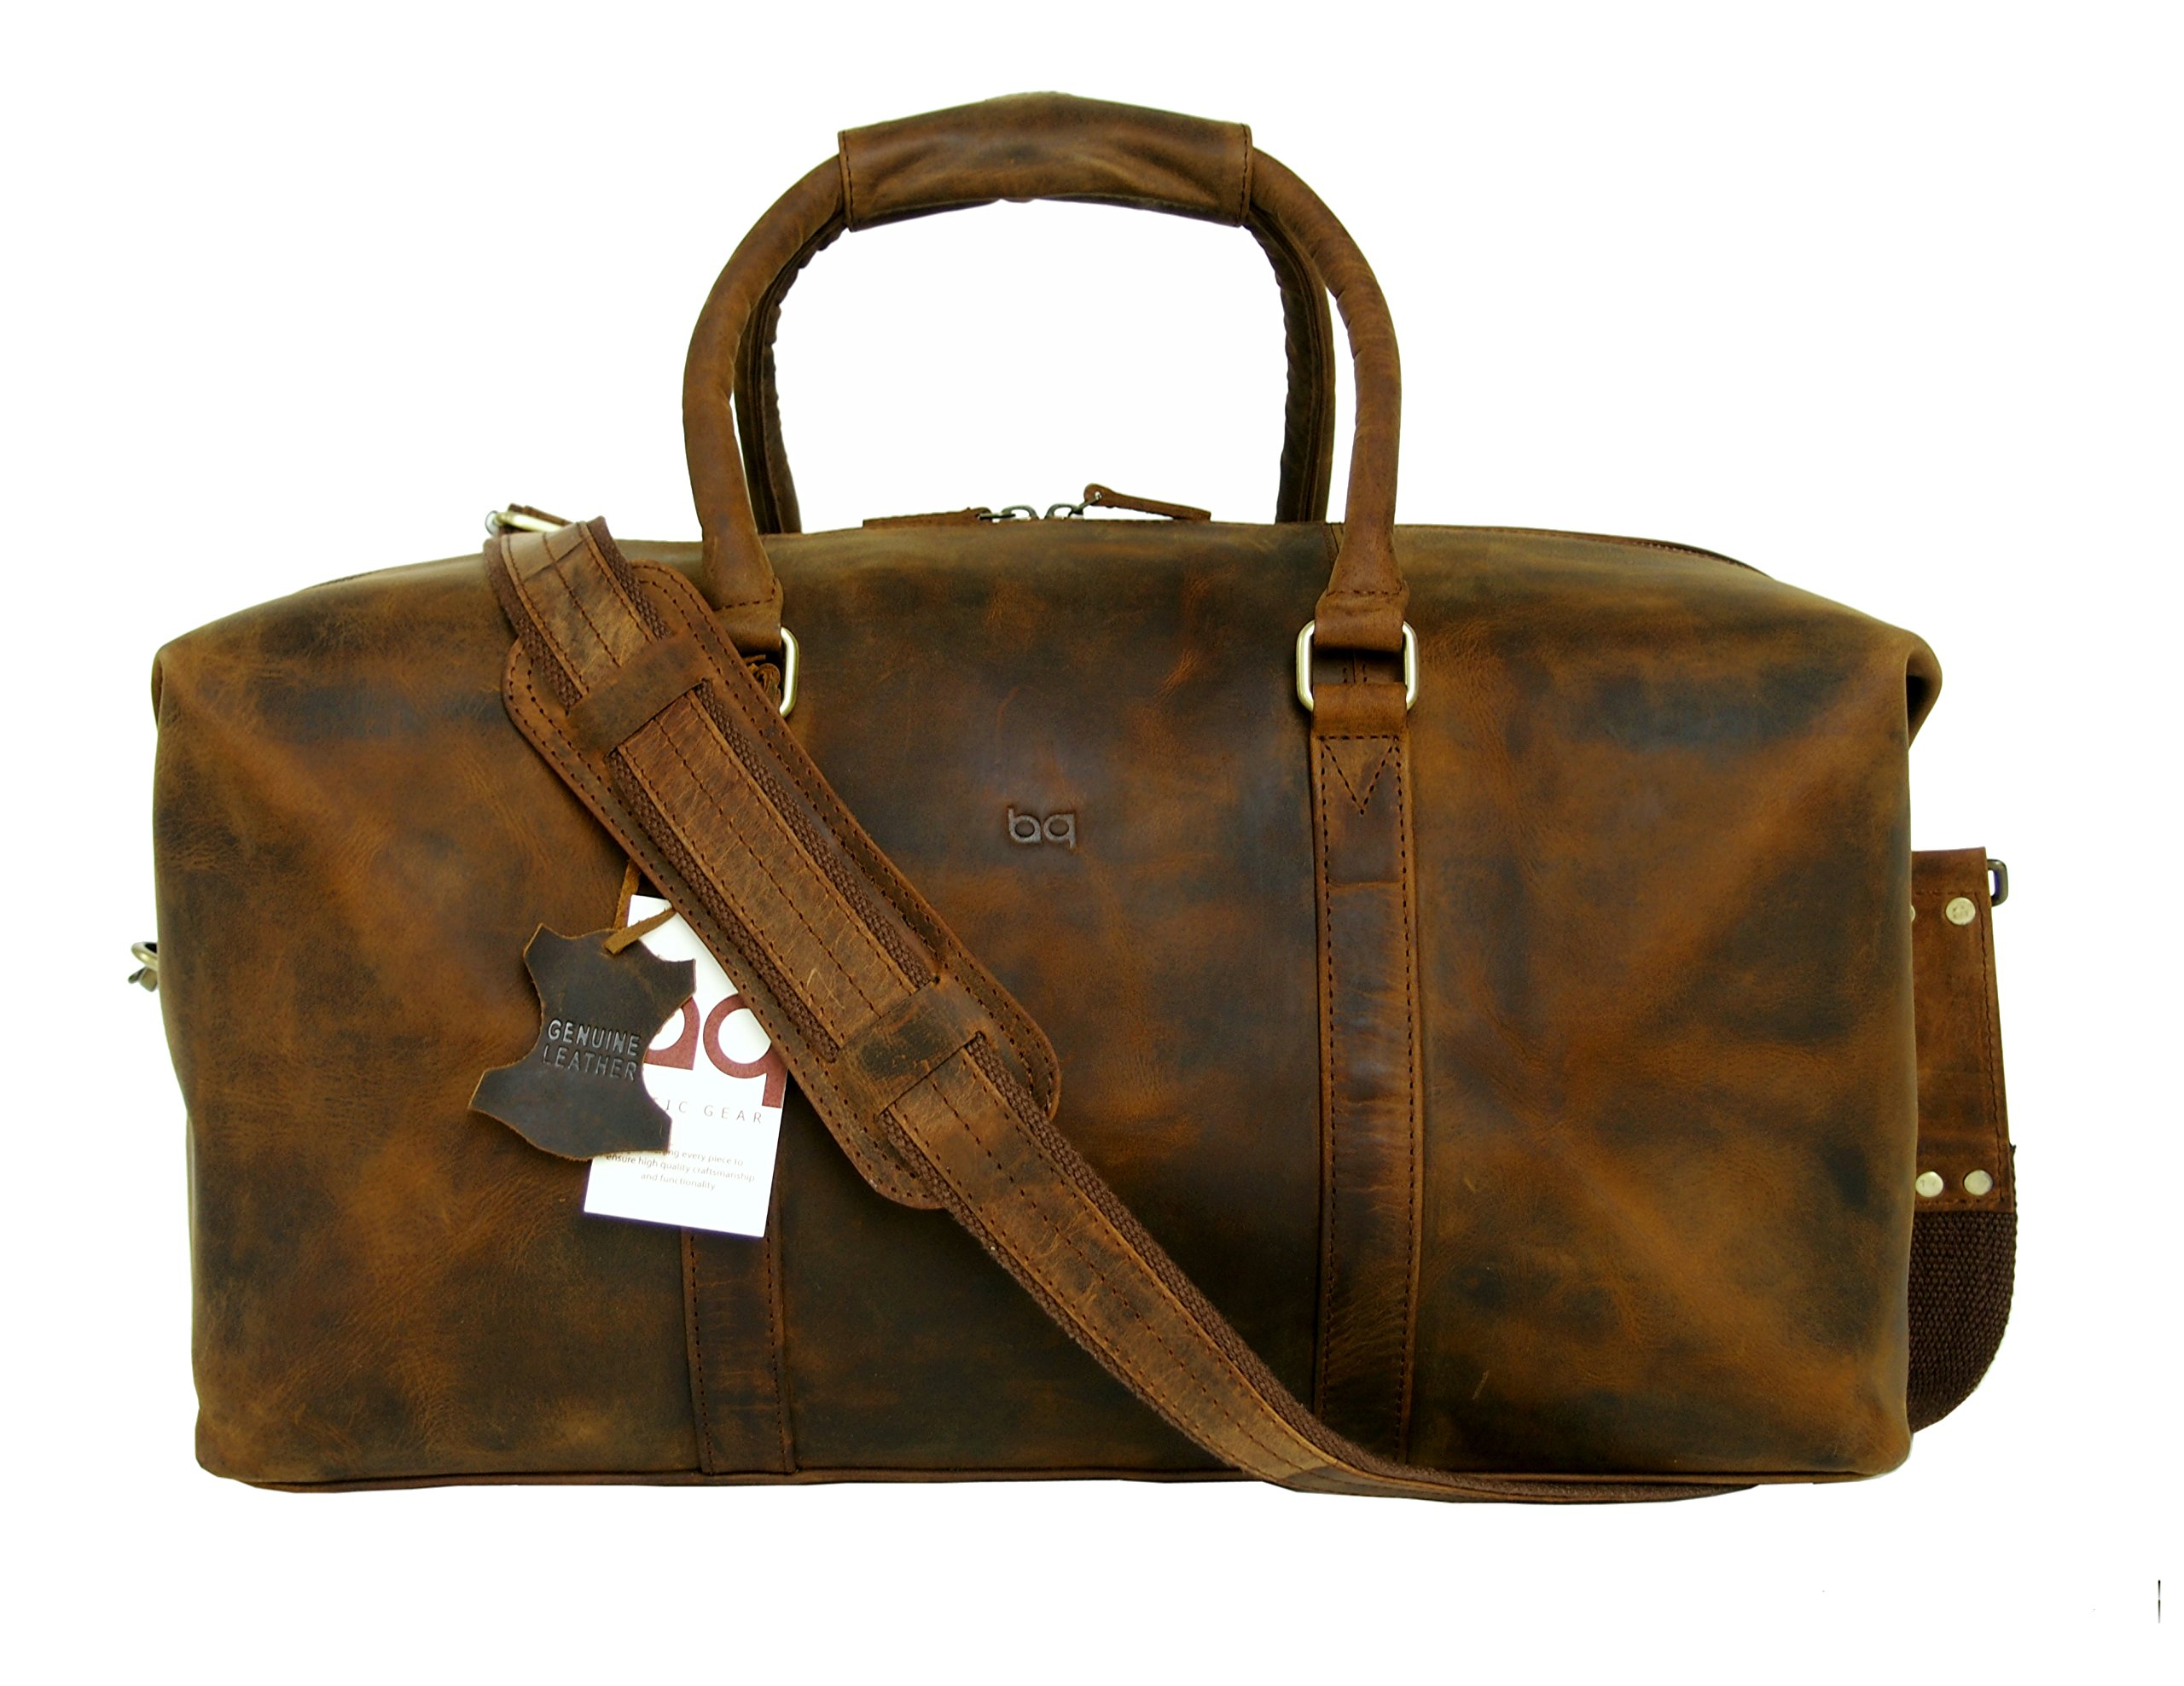 Basic Gear Full Grain Leather Duffle Bag by Basic Gear